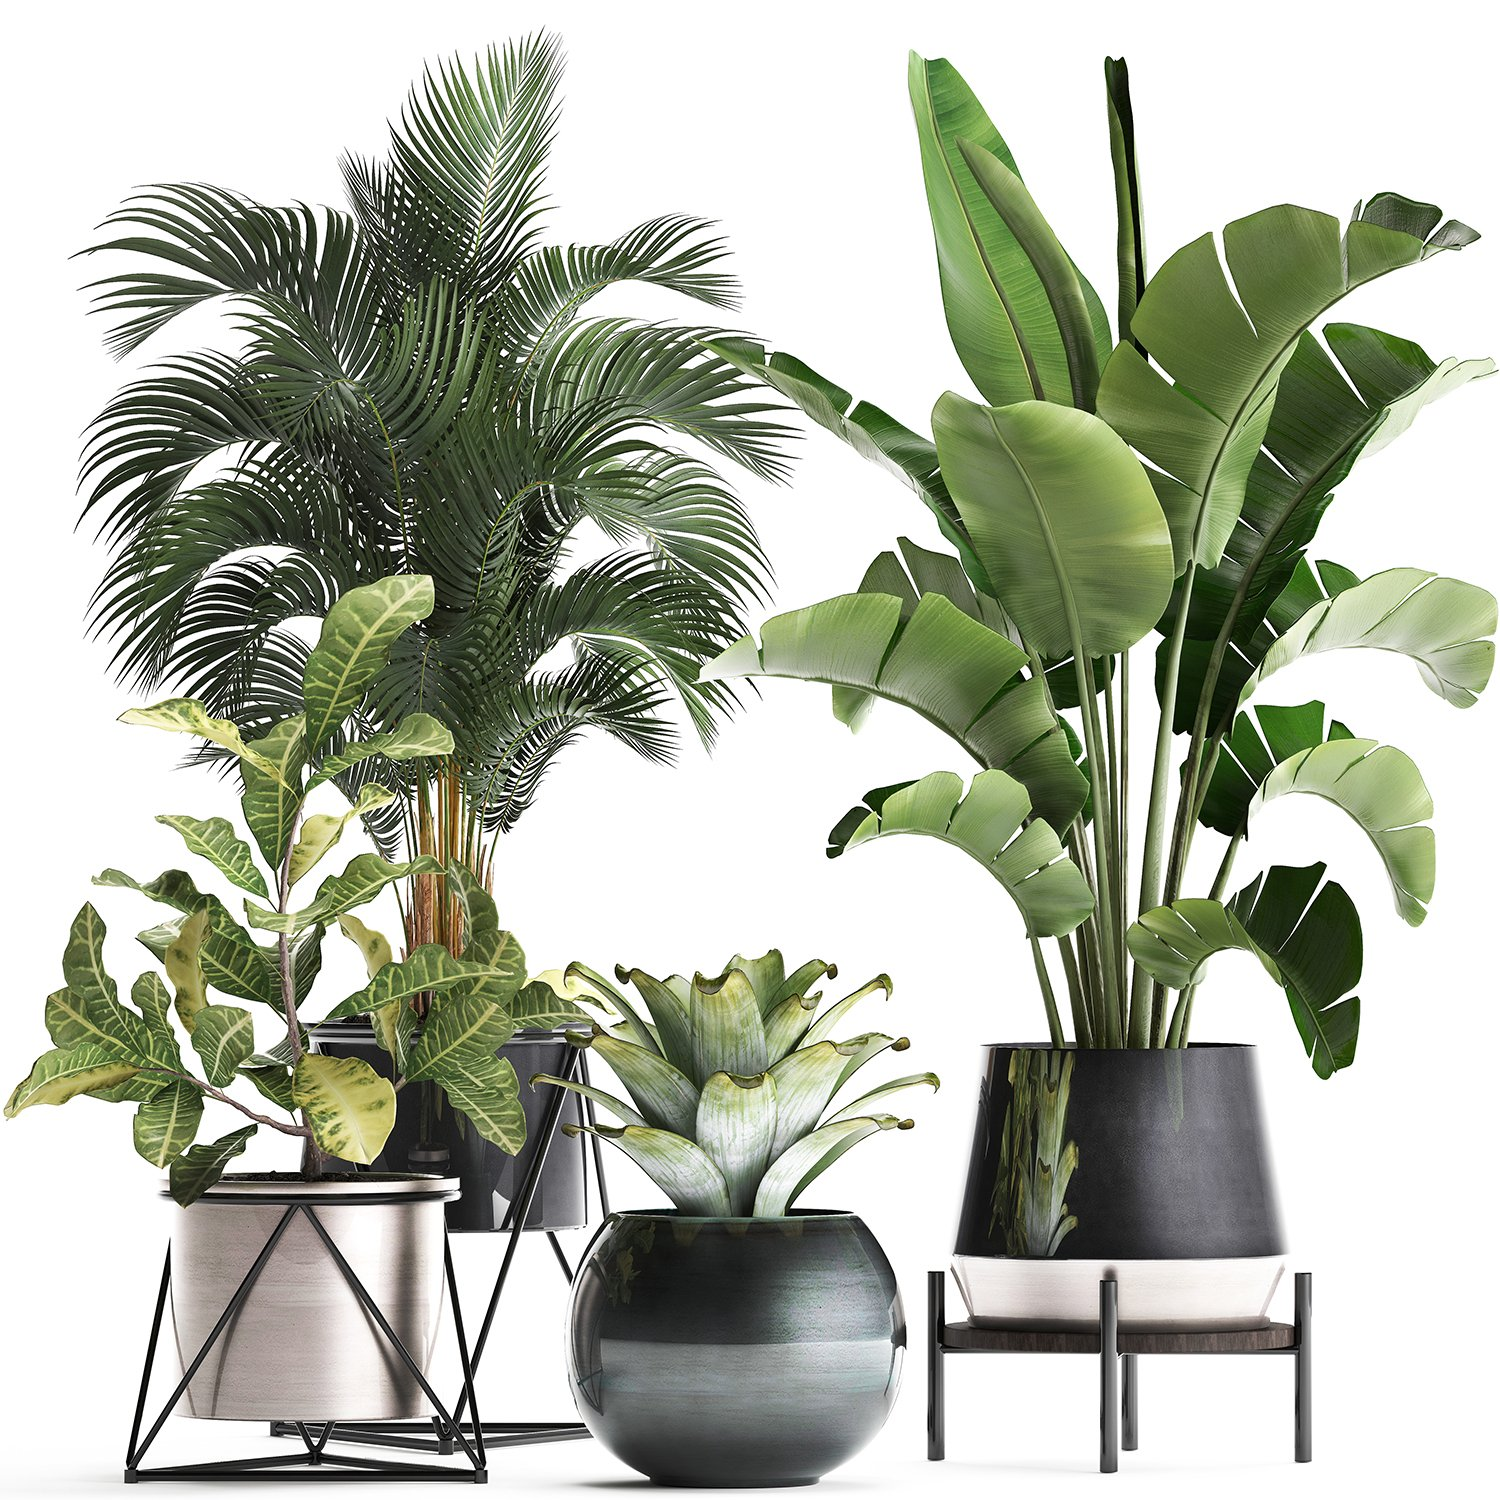 A Collection Of Decorative Plants In Pots For Home 441 3d Model In